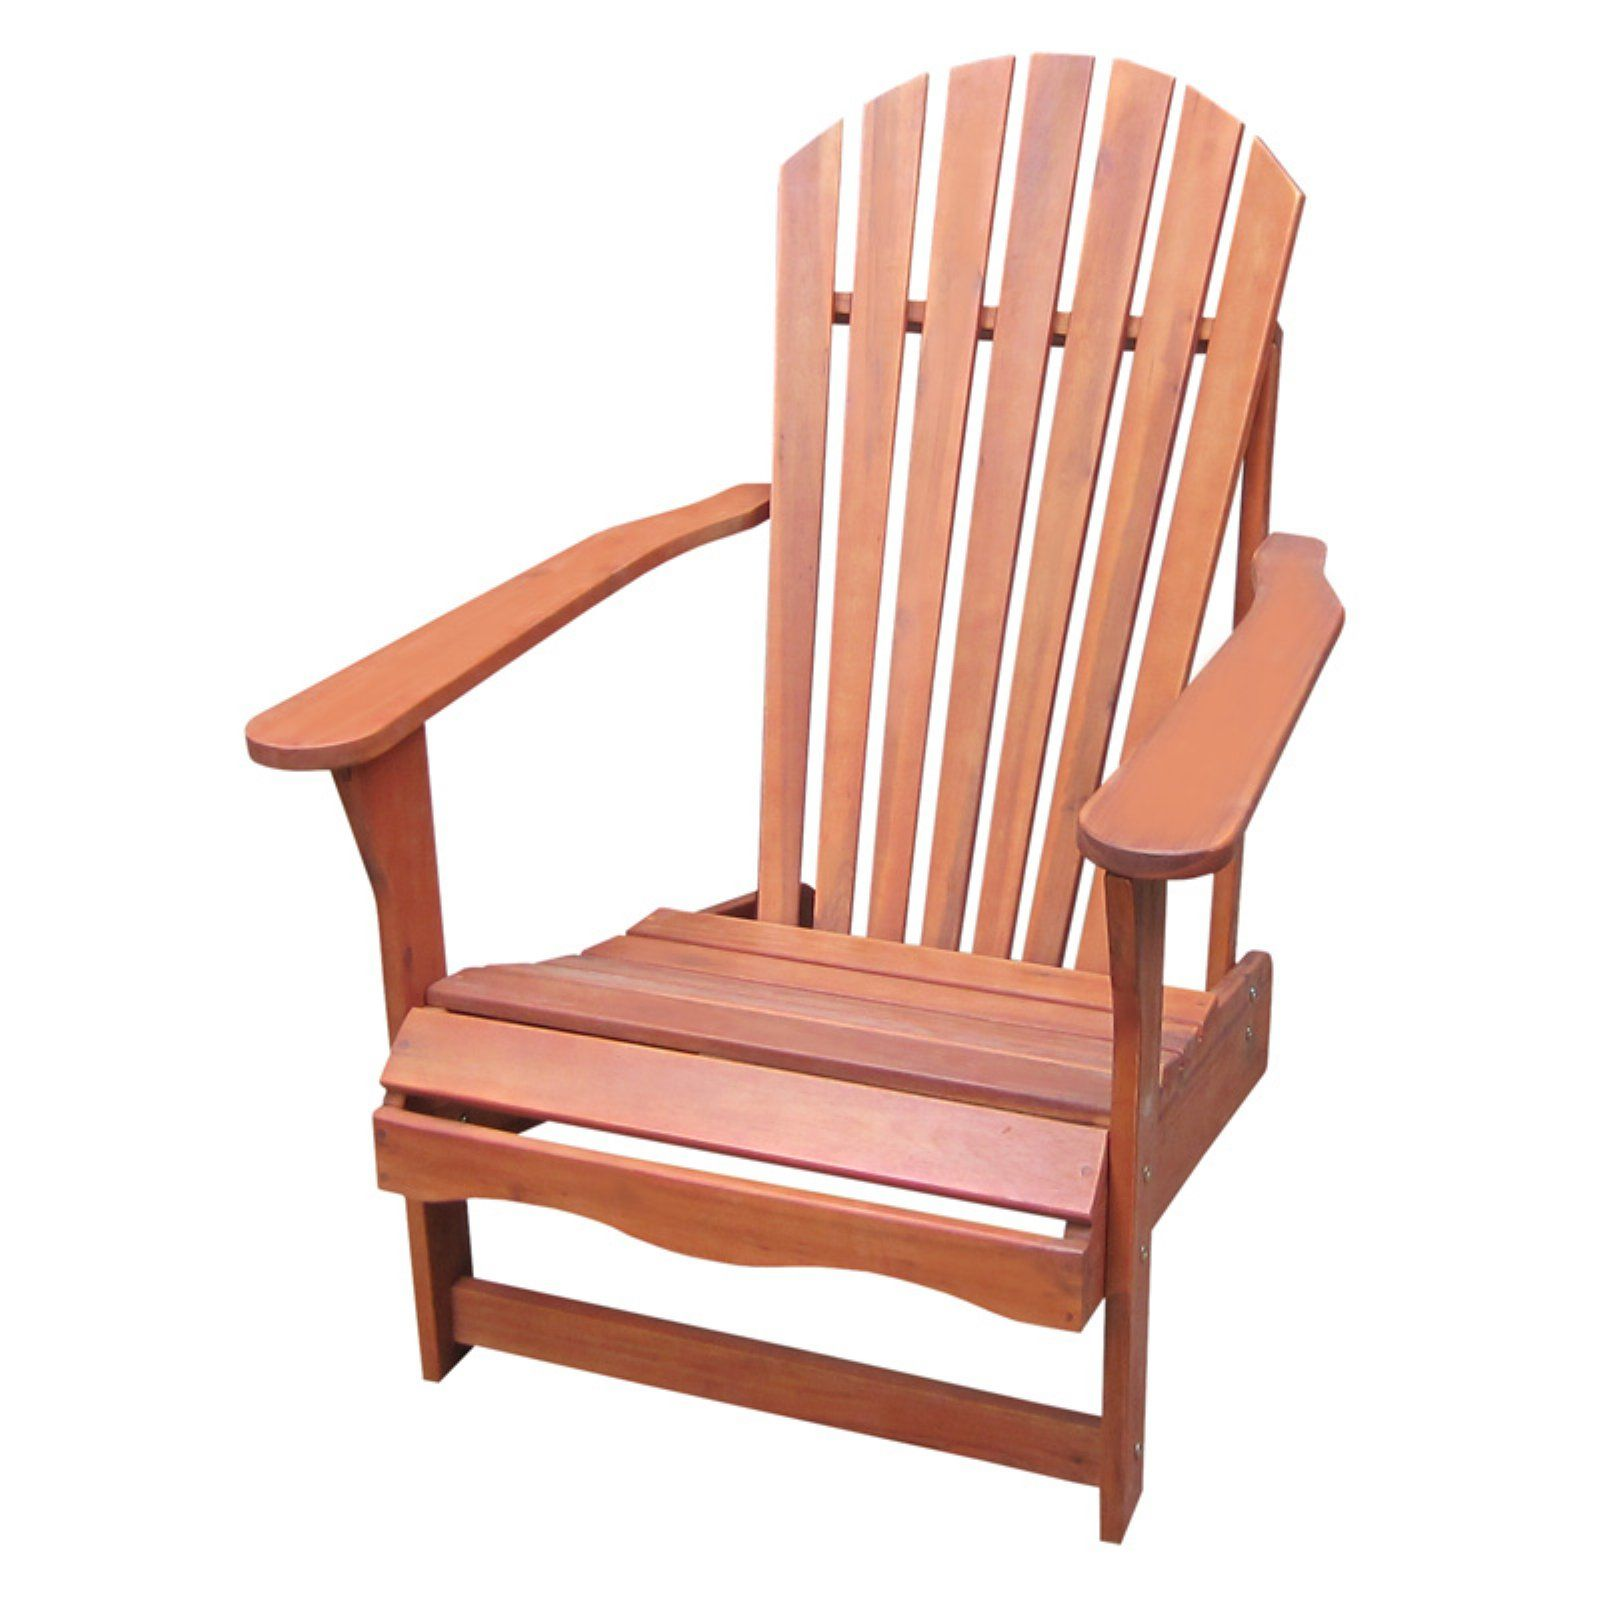 Outdoor International Concepts Acacia Wood Adirondack Chair Wood